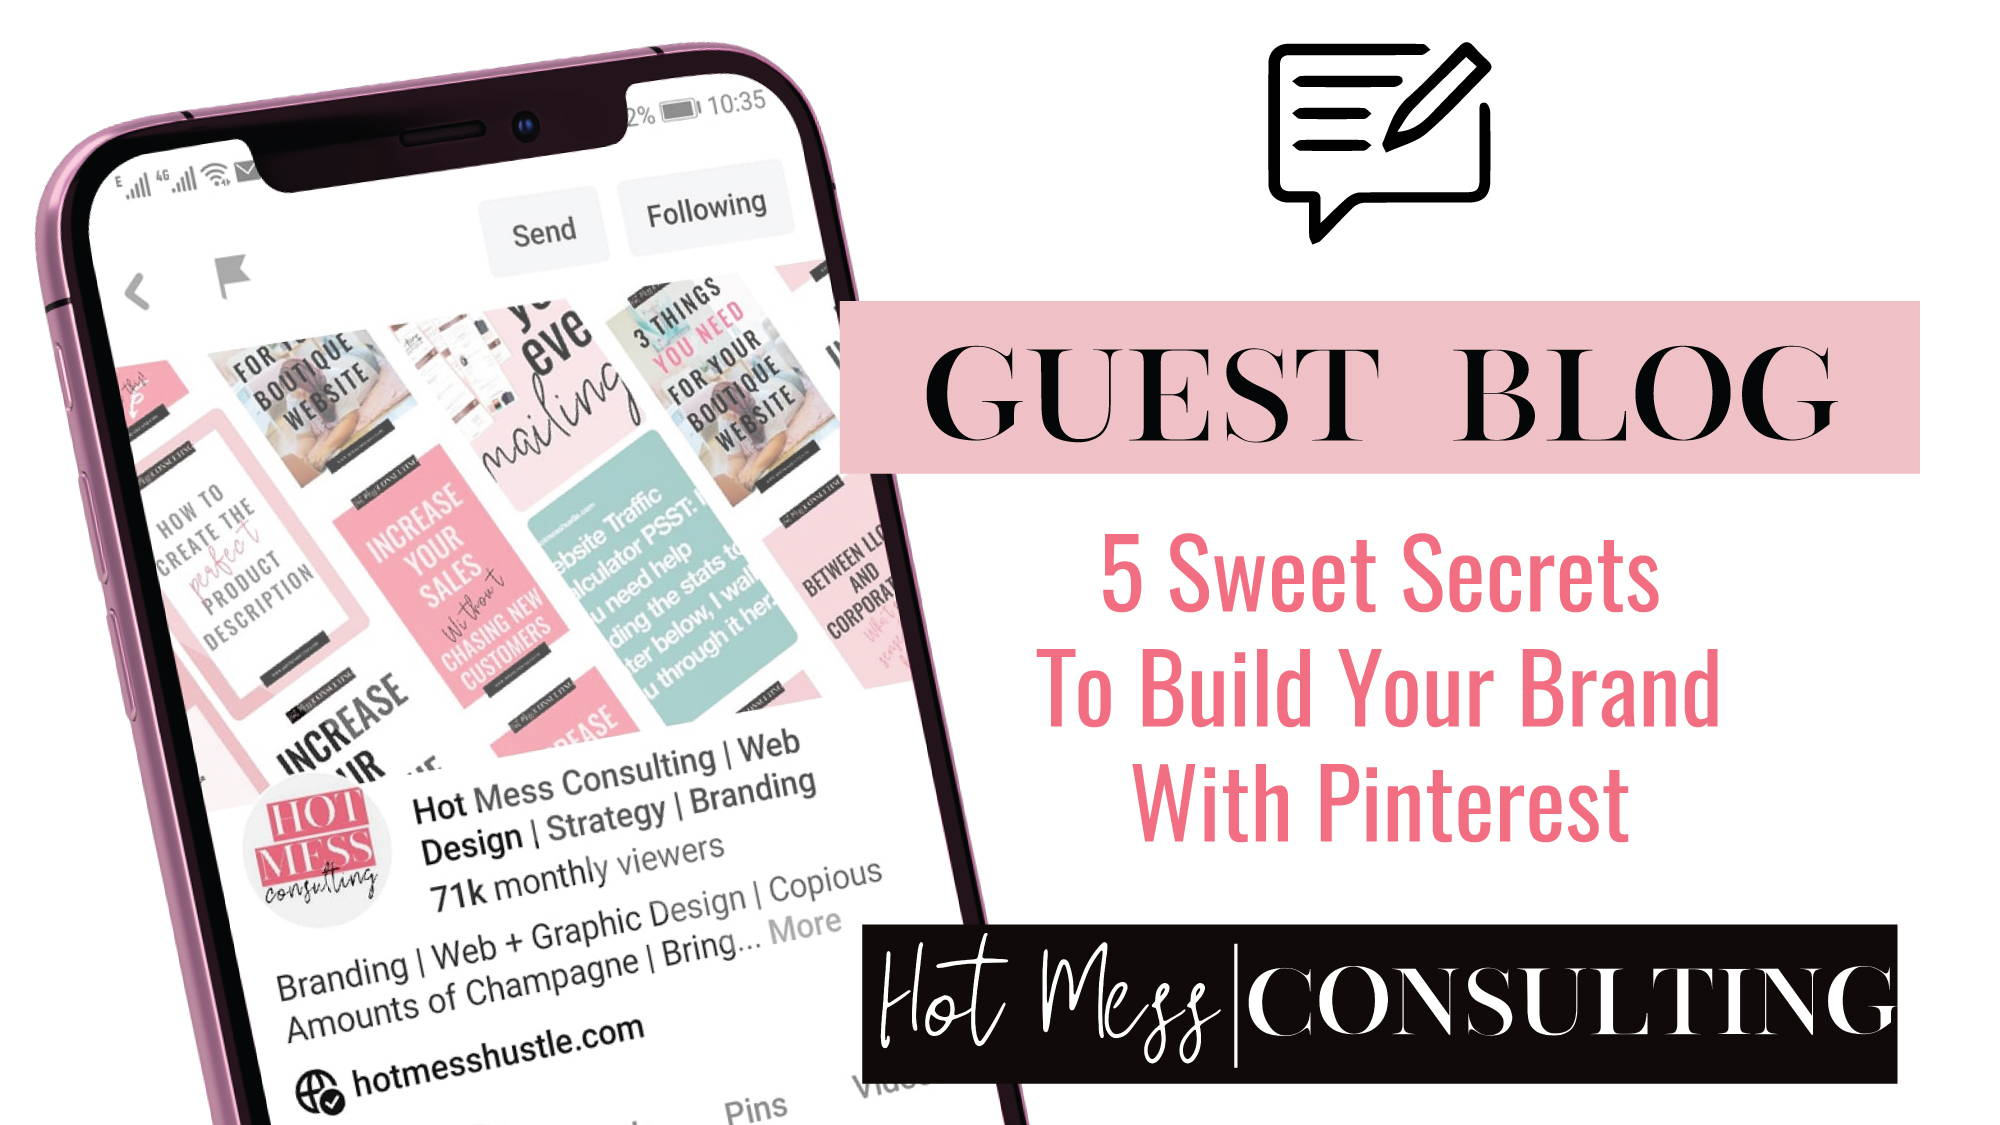 5 Sweet Secrets To Build Your Brand With Pinterest